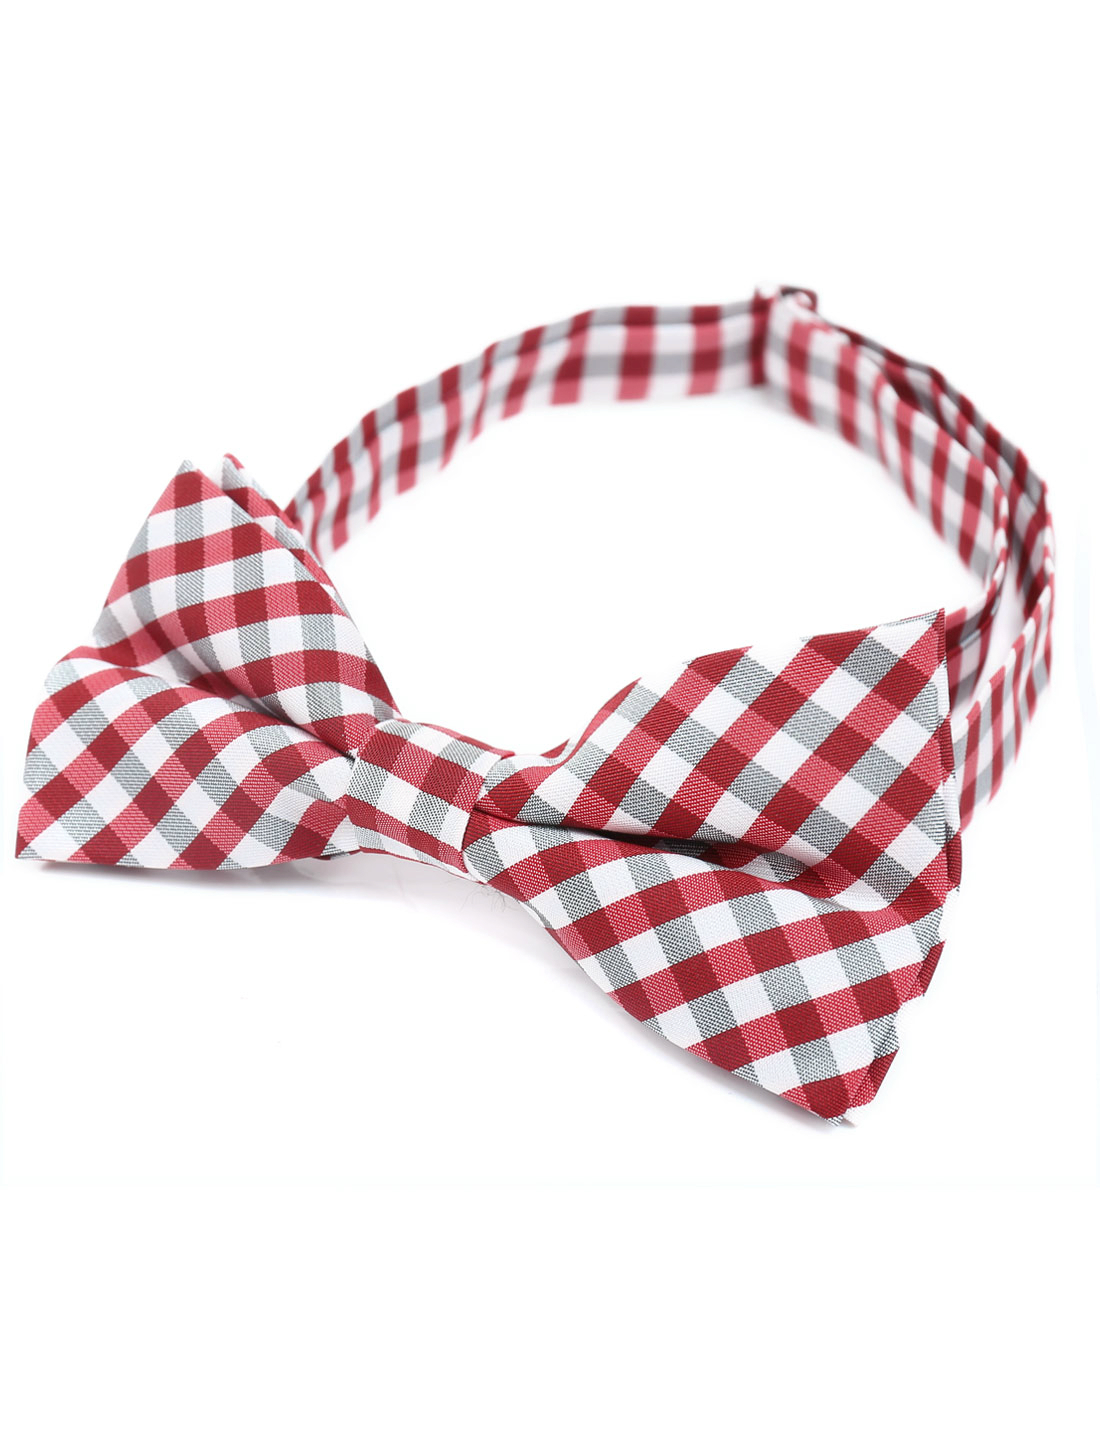 Men Adjustable Neck Strap Plaids Two Layers Bowtie Red White